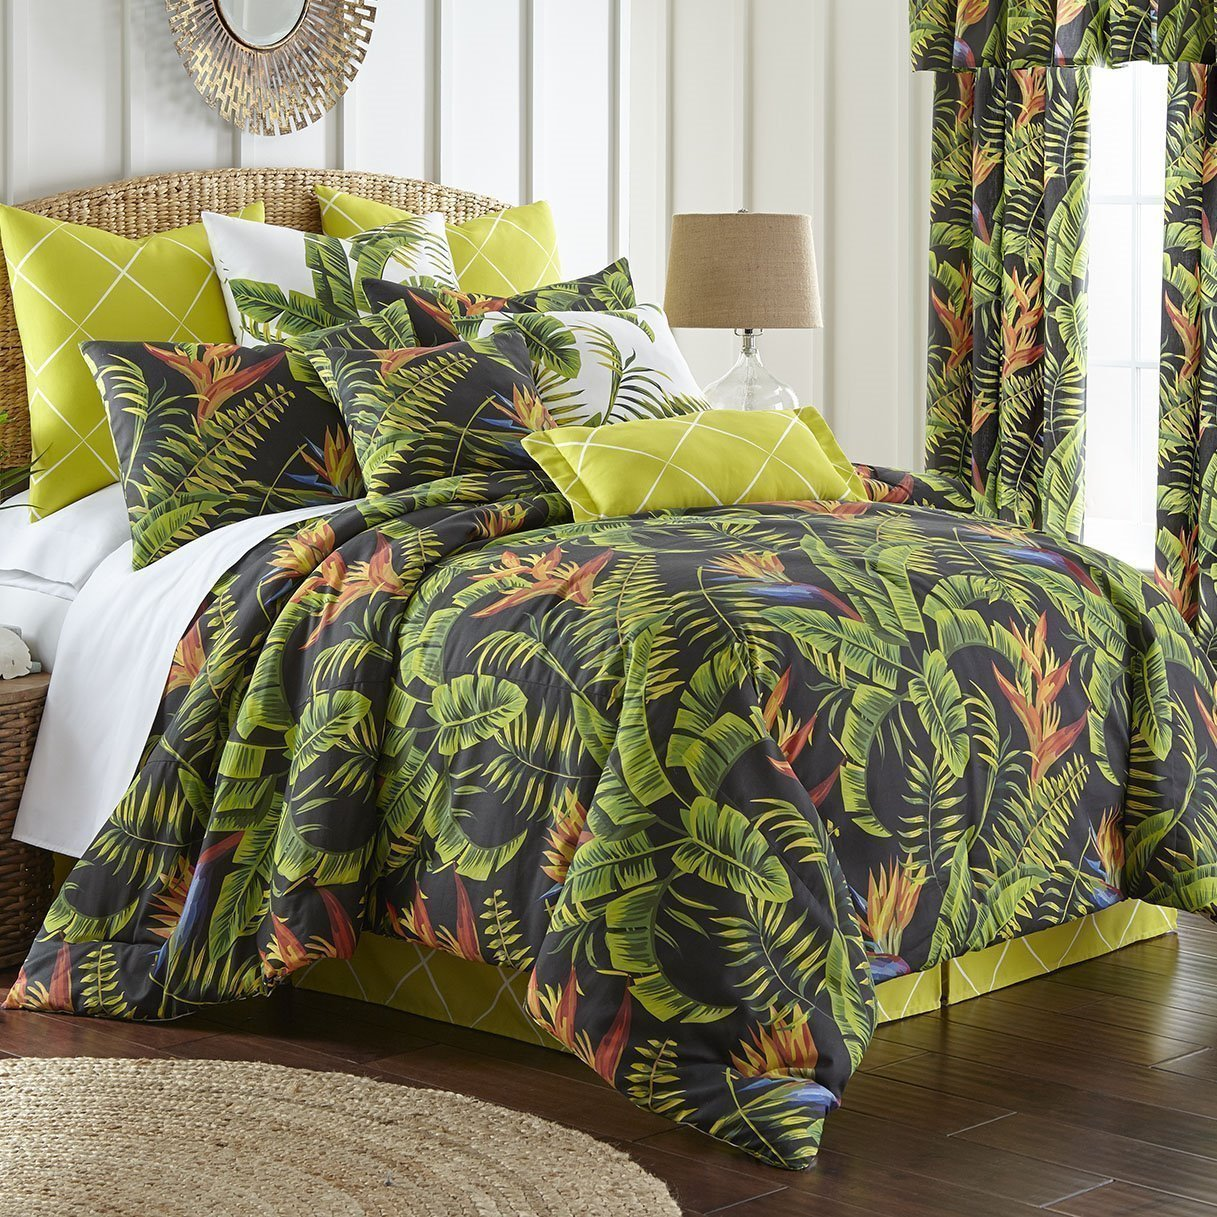 Flower Of Paradise Duvet Cover Set King Size